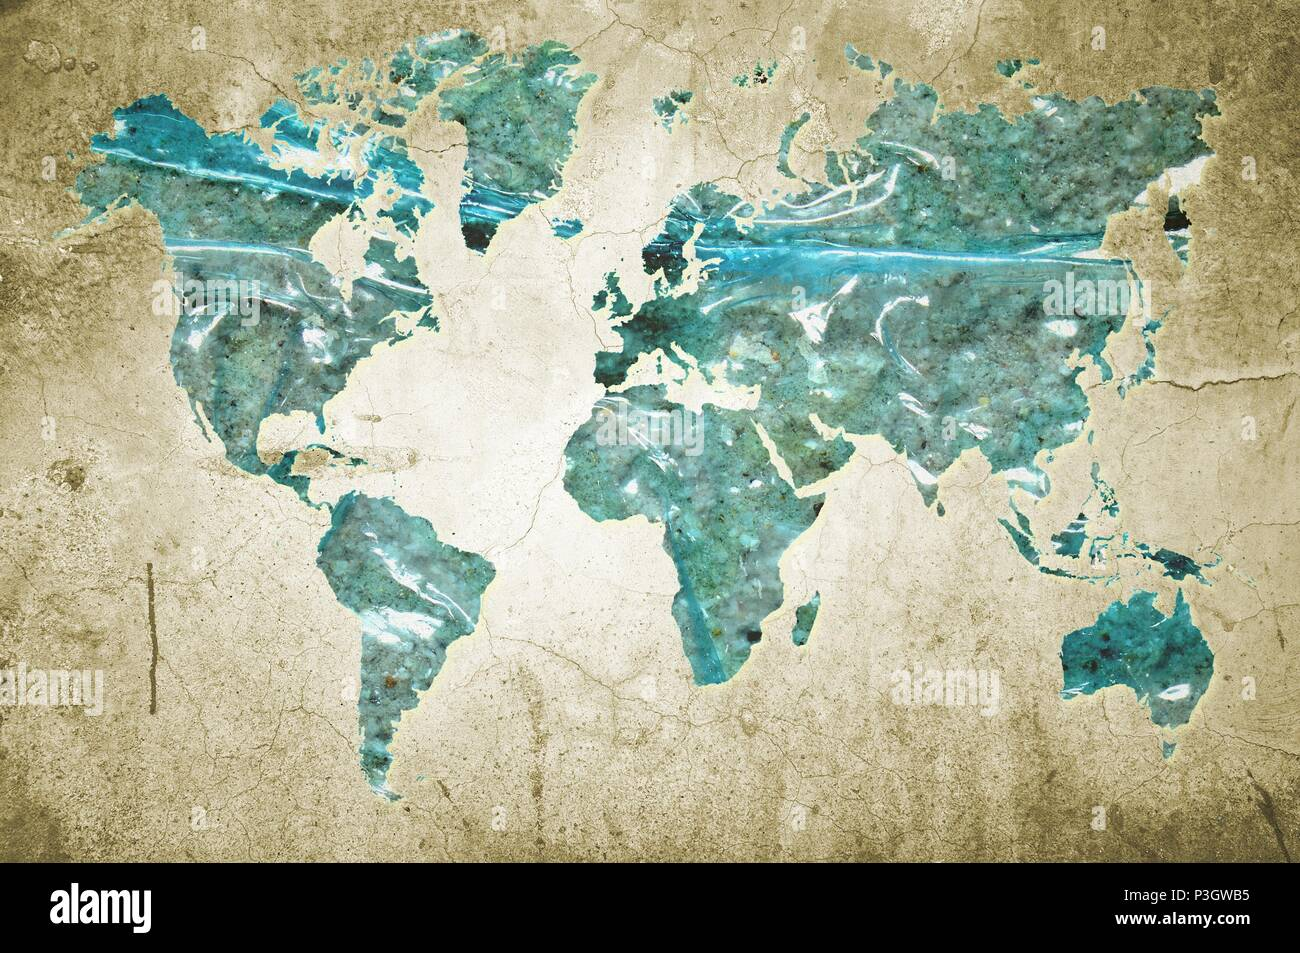 Simple Flat Map Of World With Countries Stock Photos & Simple Flat on